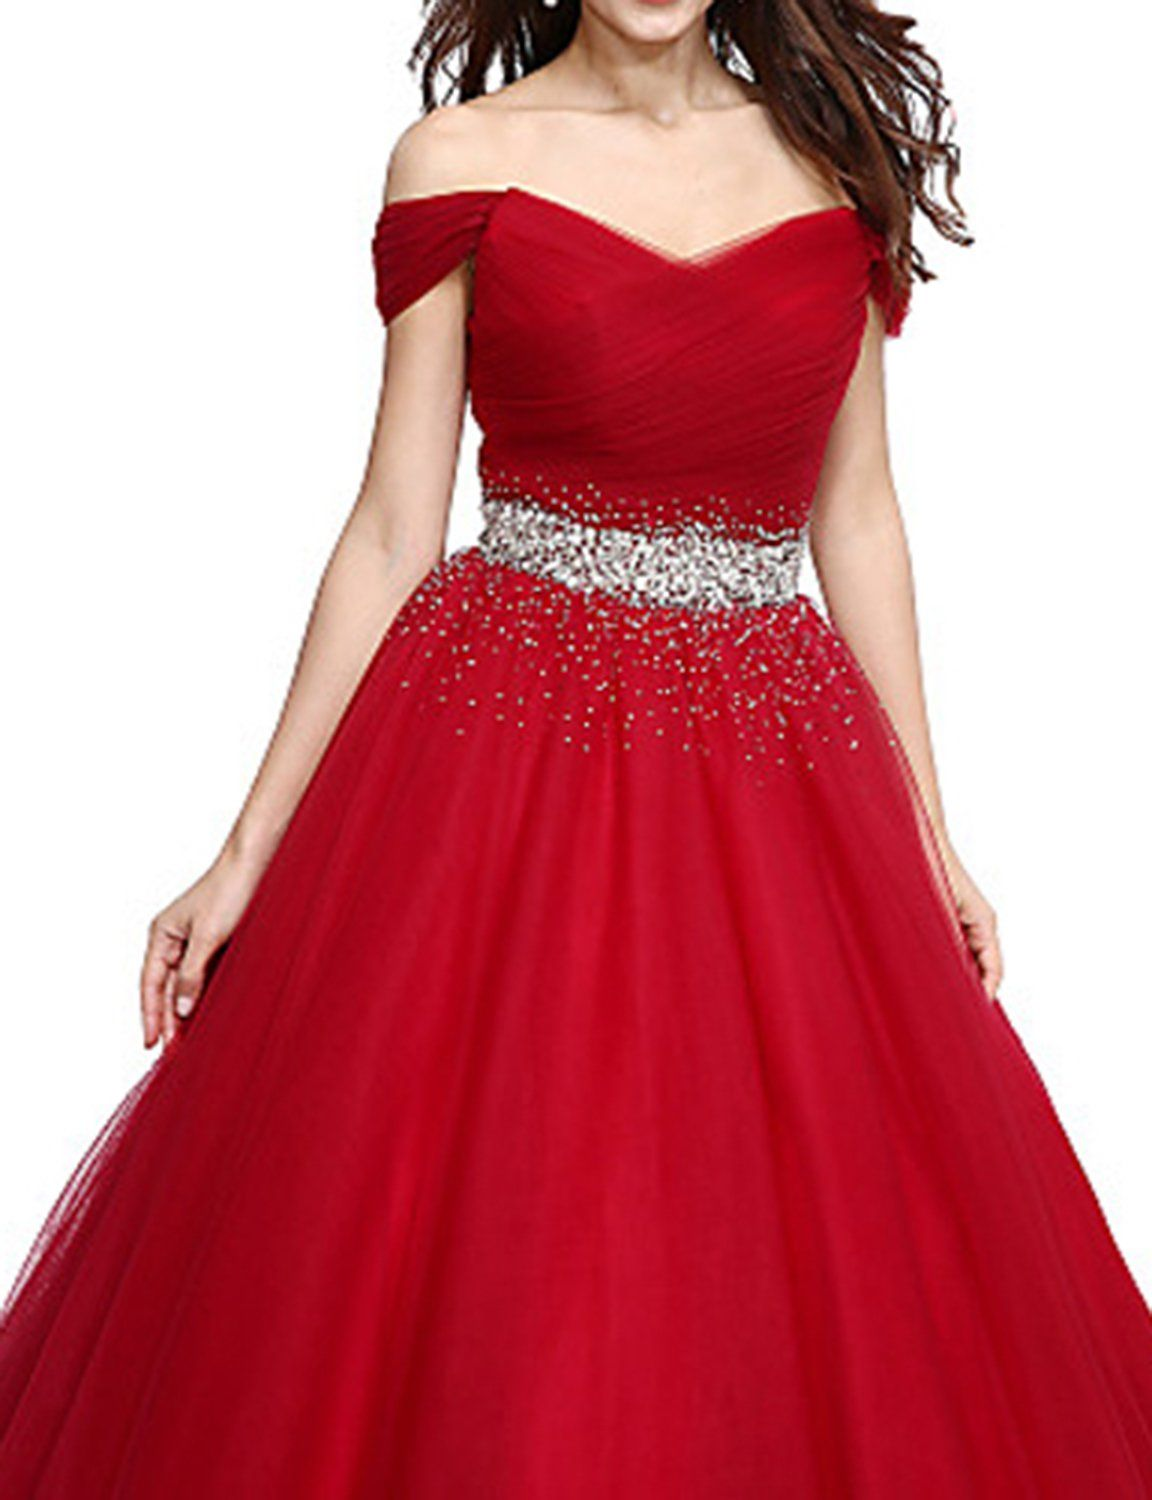 Udresses womens off shoulder prom dress long pageant ball gown